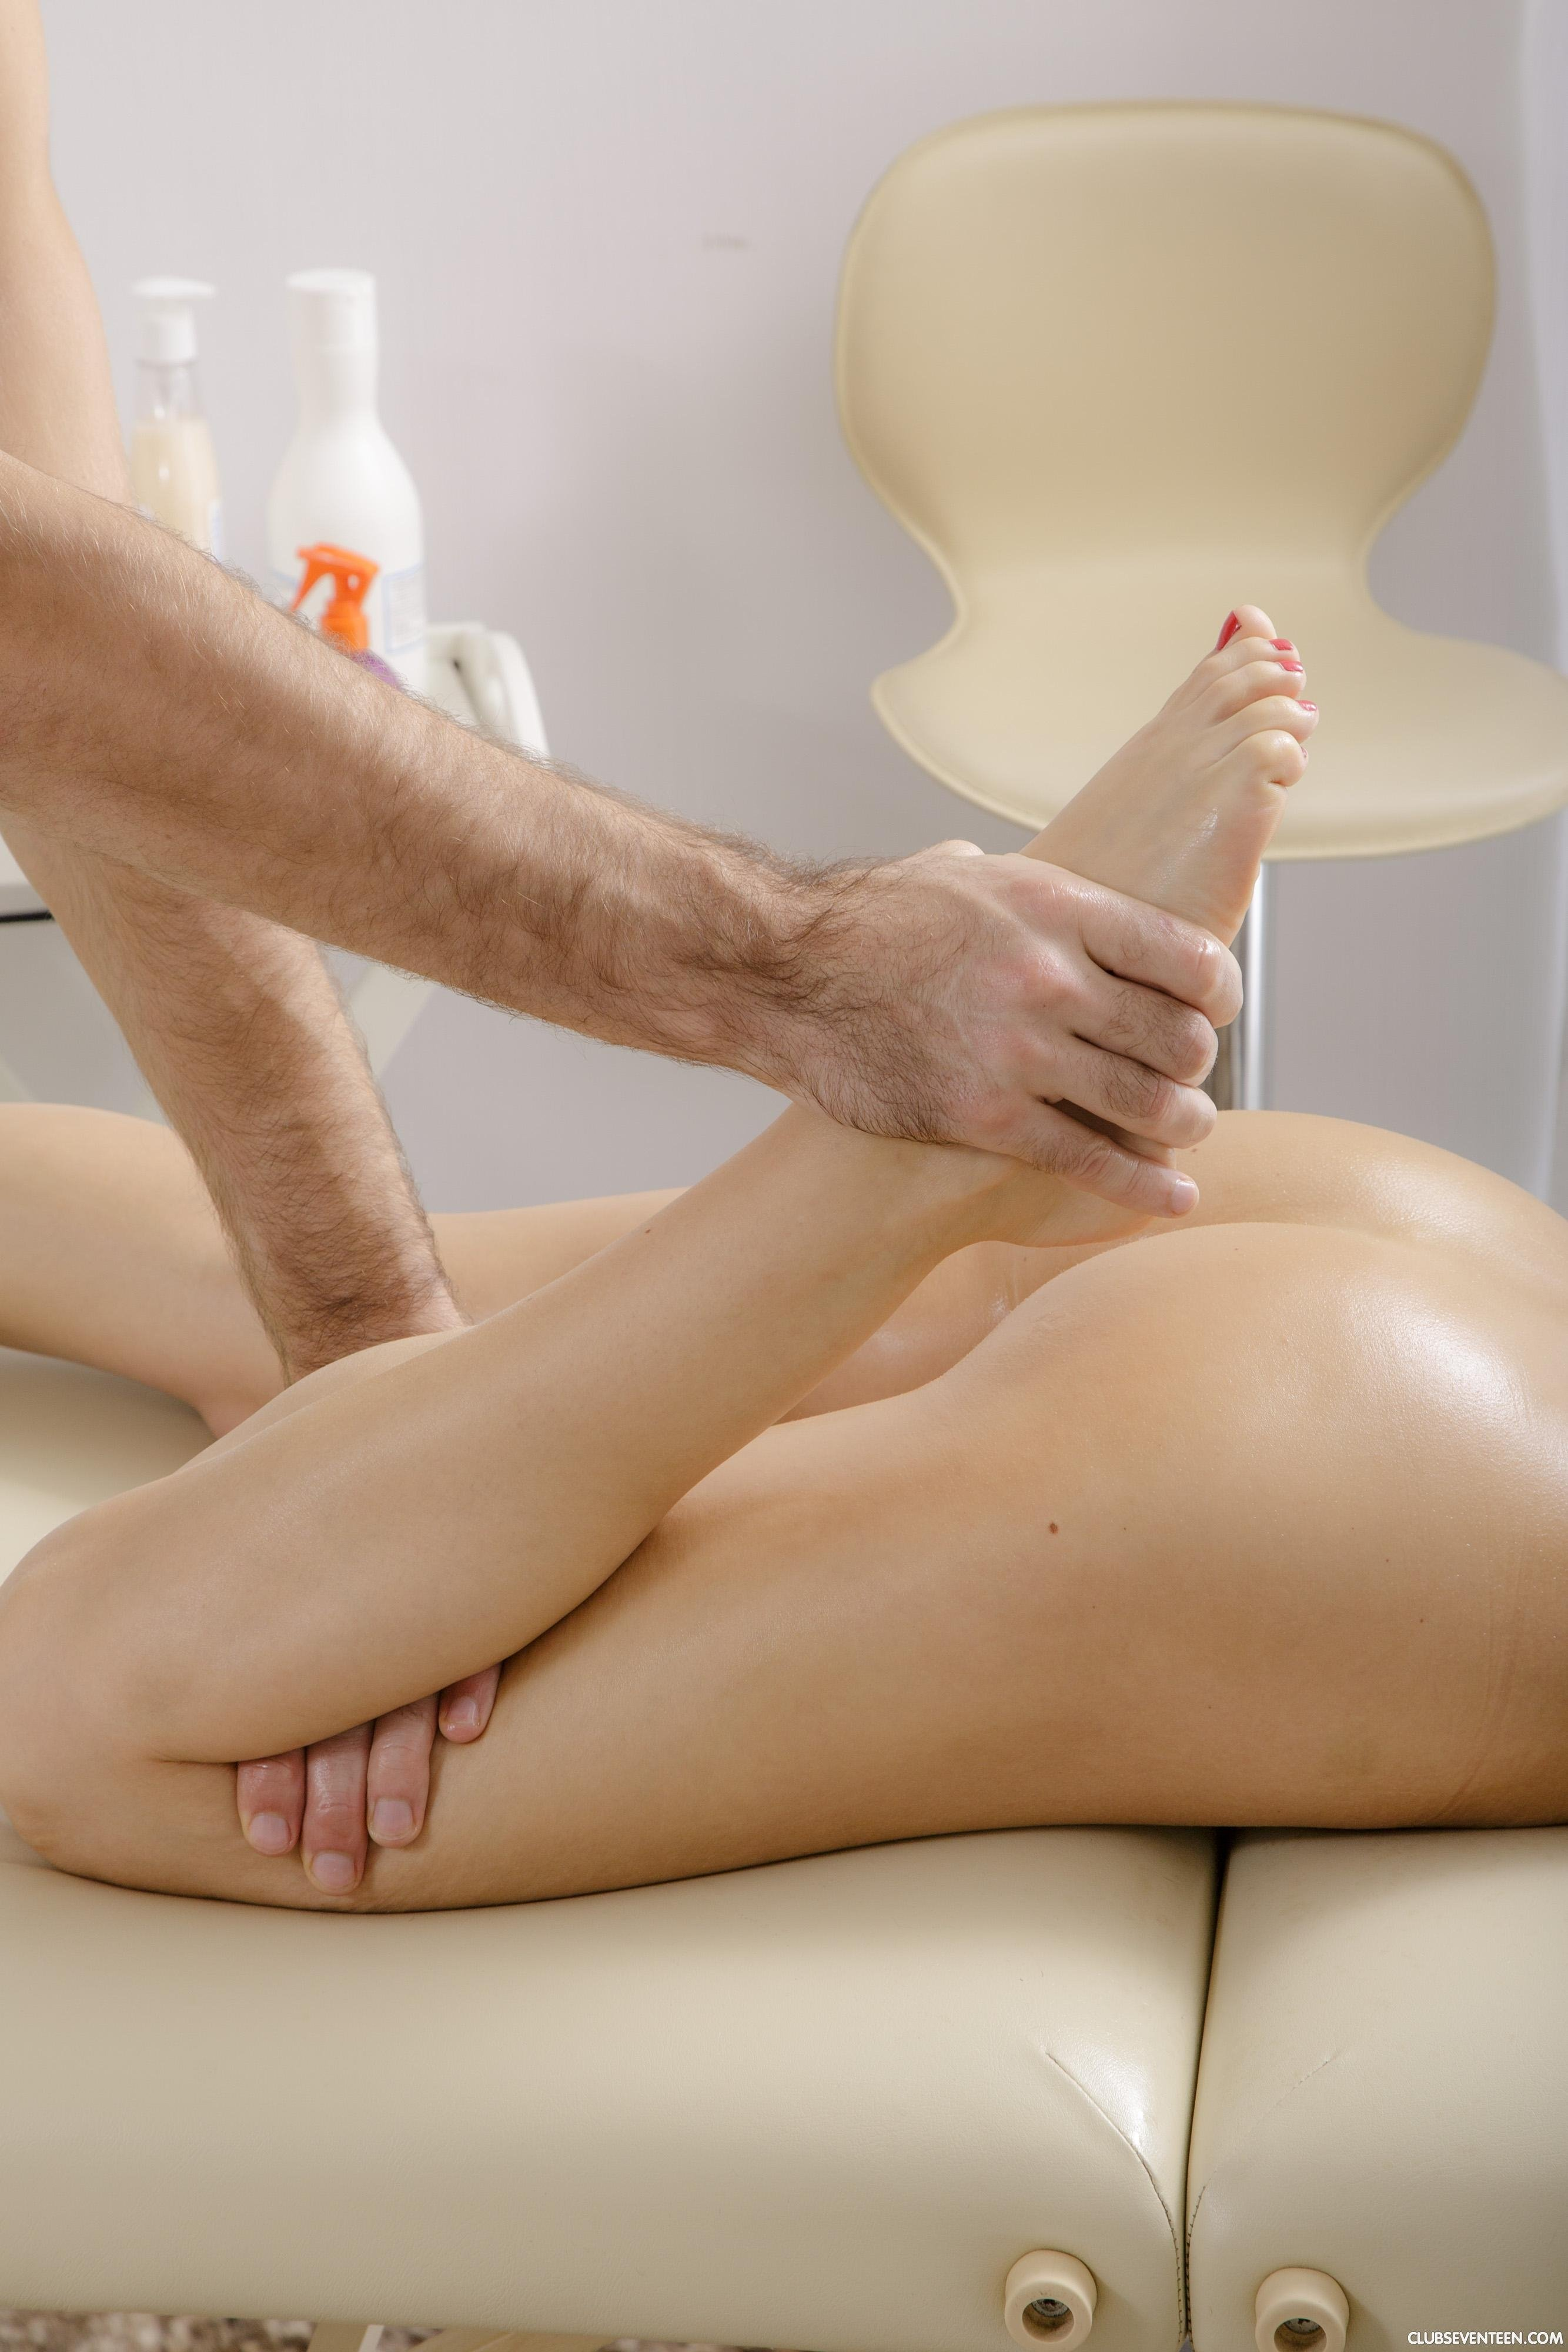 Massage These Points For Extra Romance